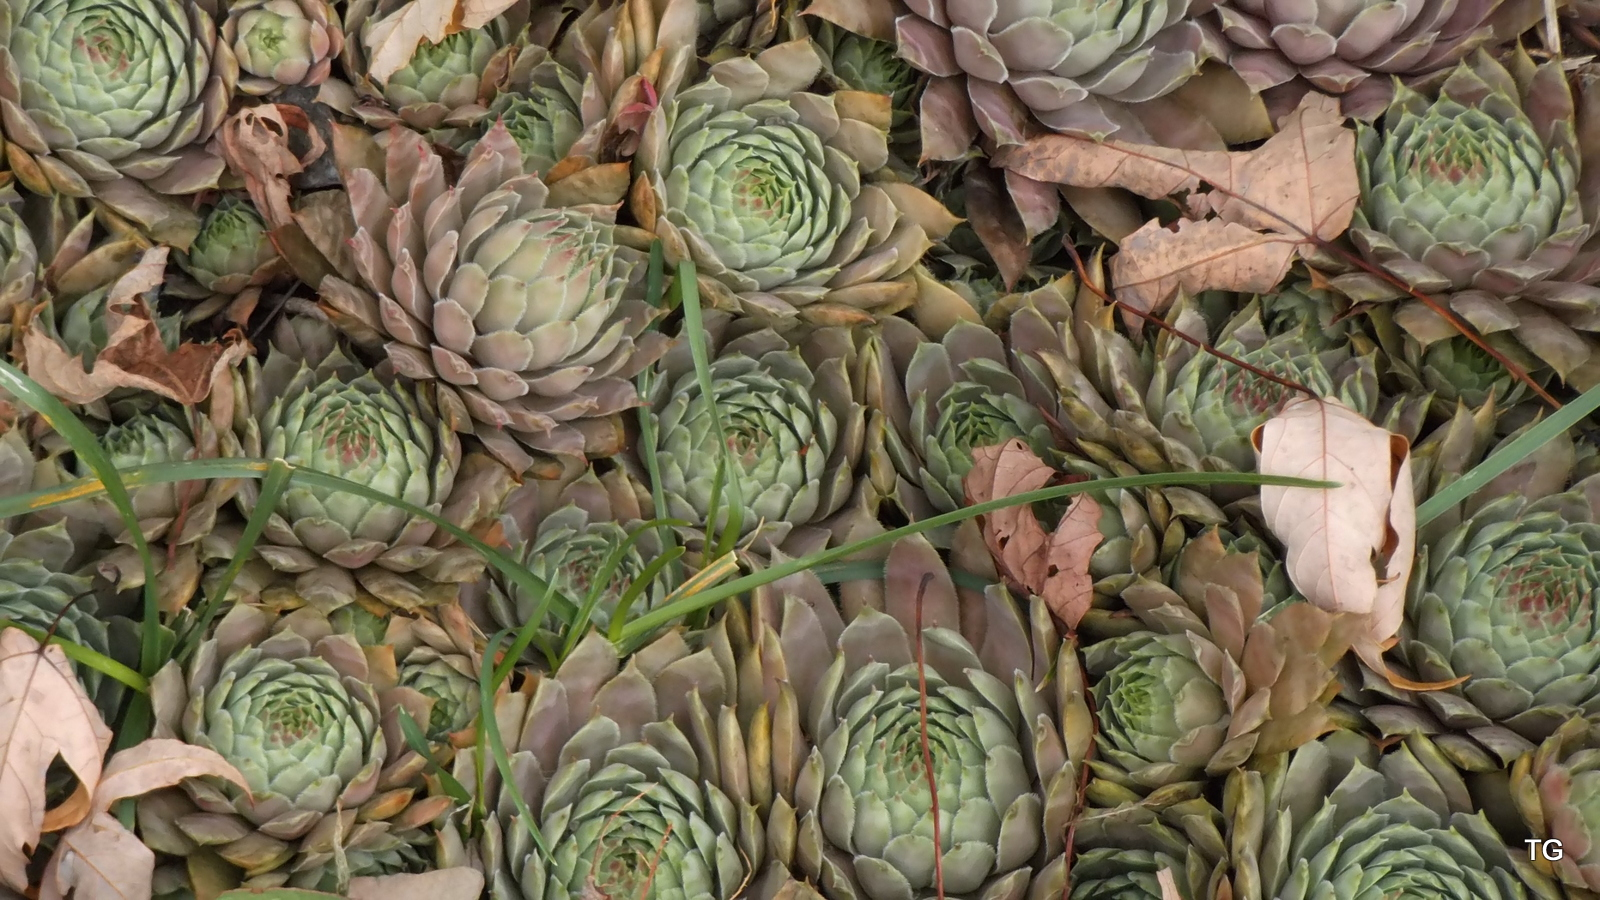 Hens and Chicks ... AKA Audrey when in bloom.